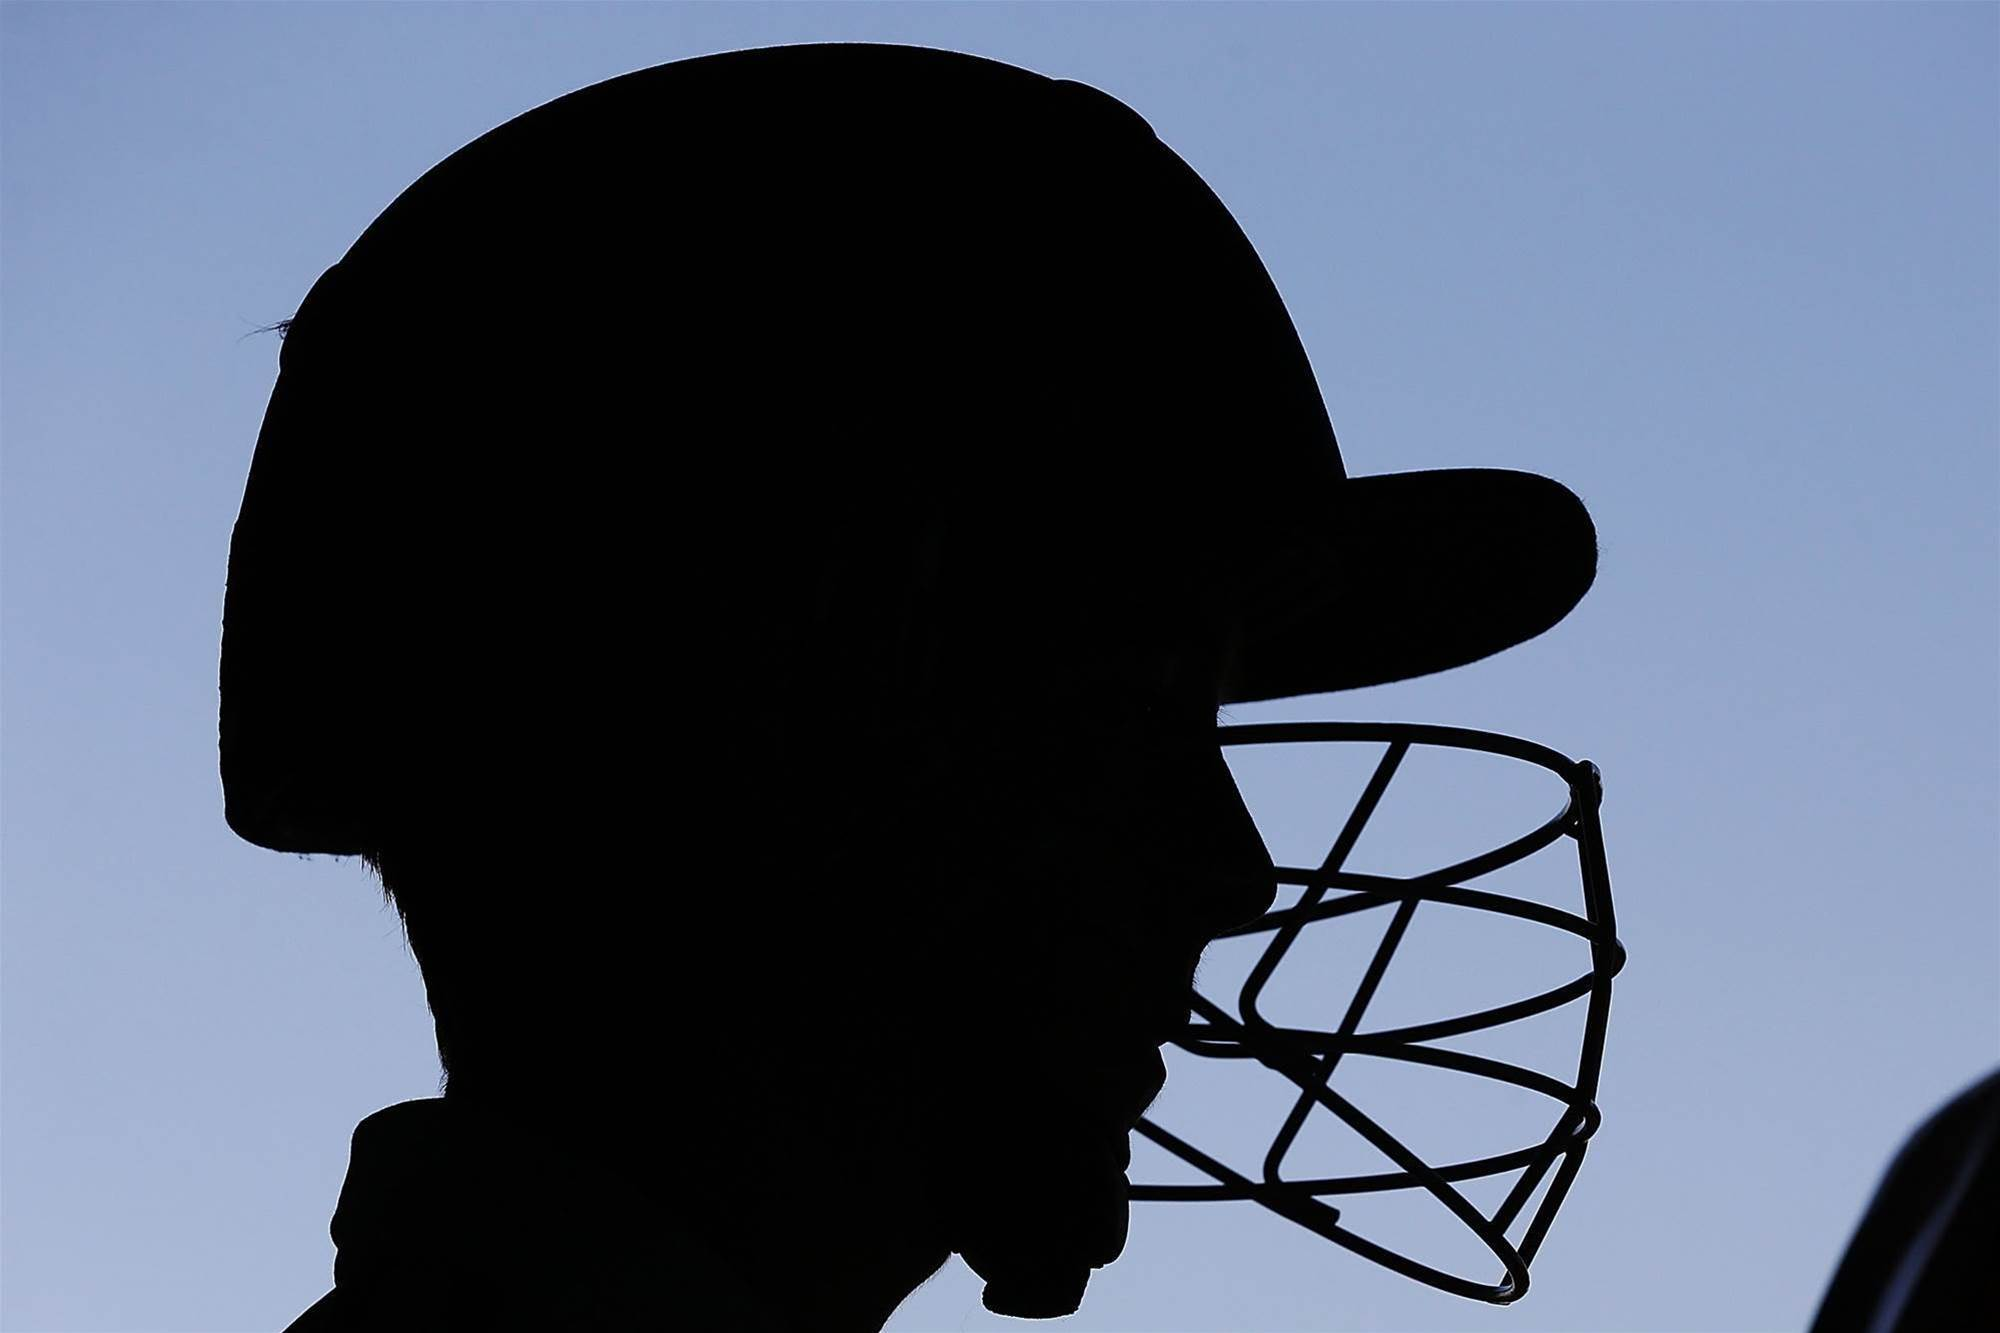 Aussie cricketer charged with rape